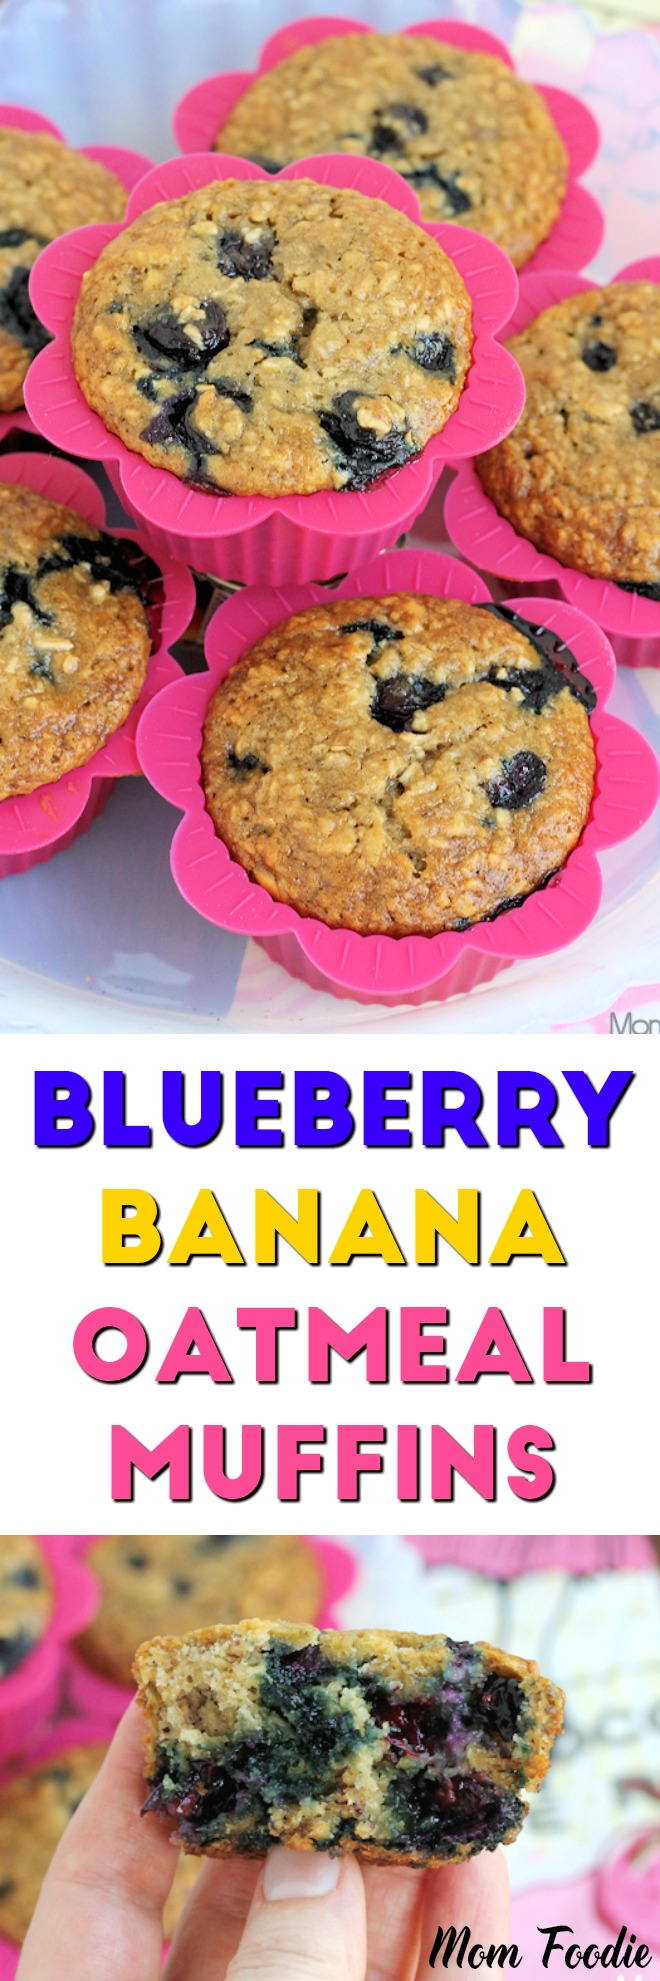 Blueberry Banana Oatmeal Muffins Recipe